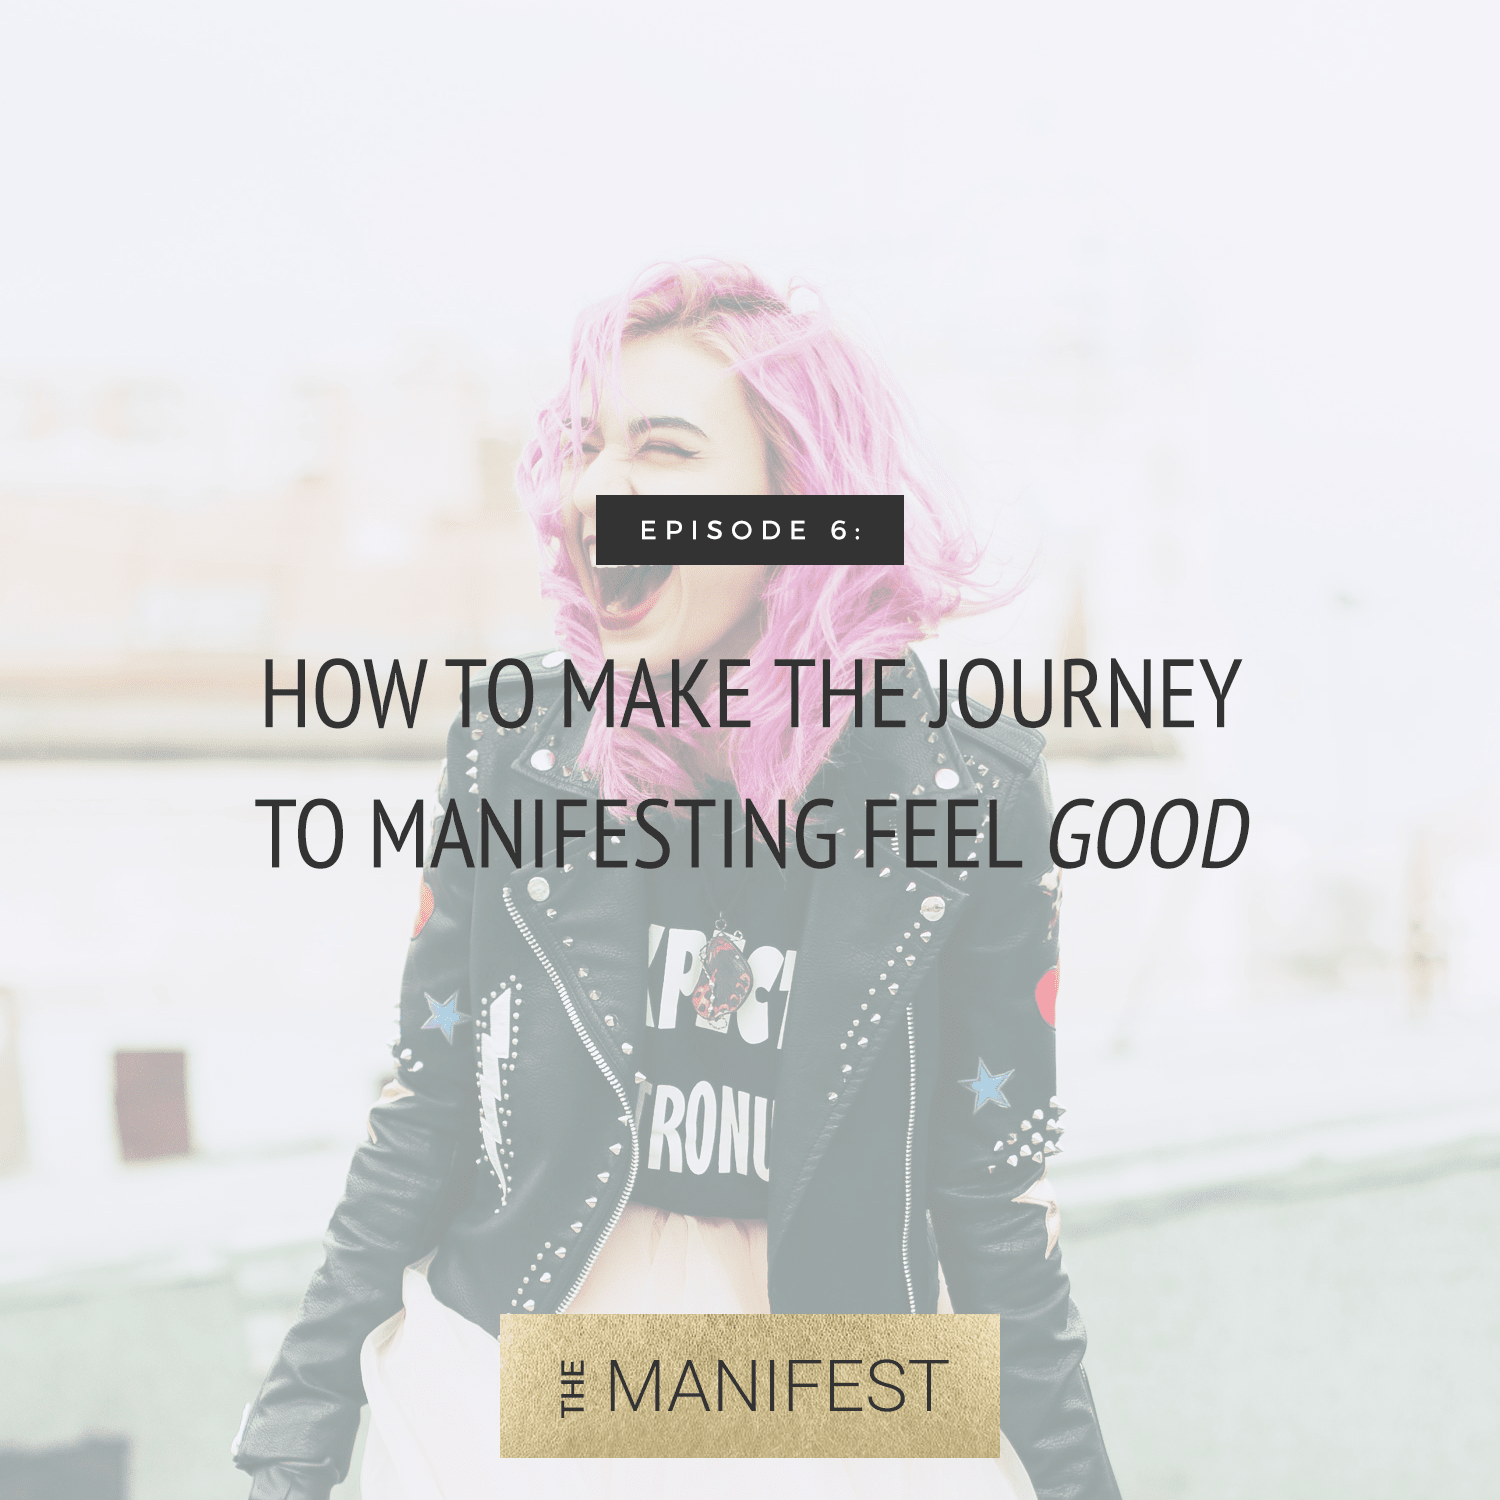 Episode #6: How To Make The Journey To Manifesting Feel Good